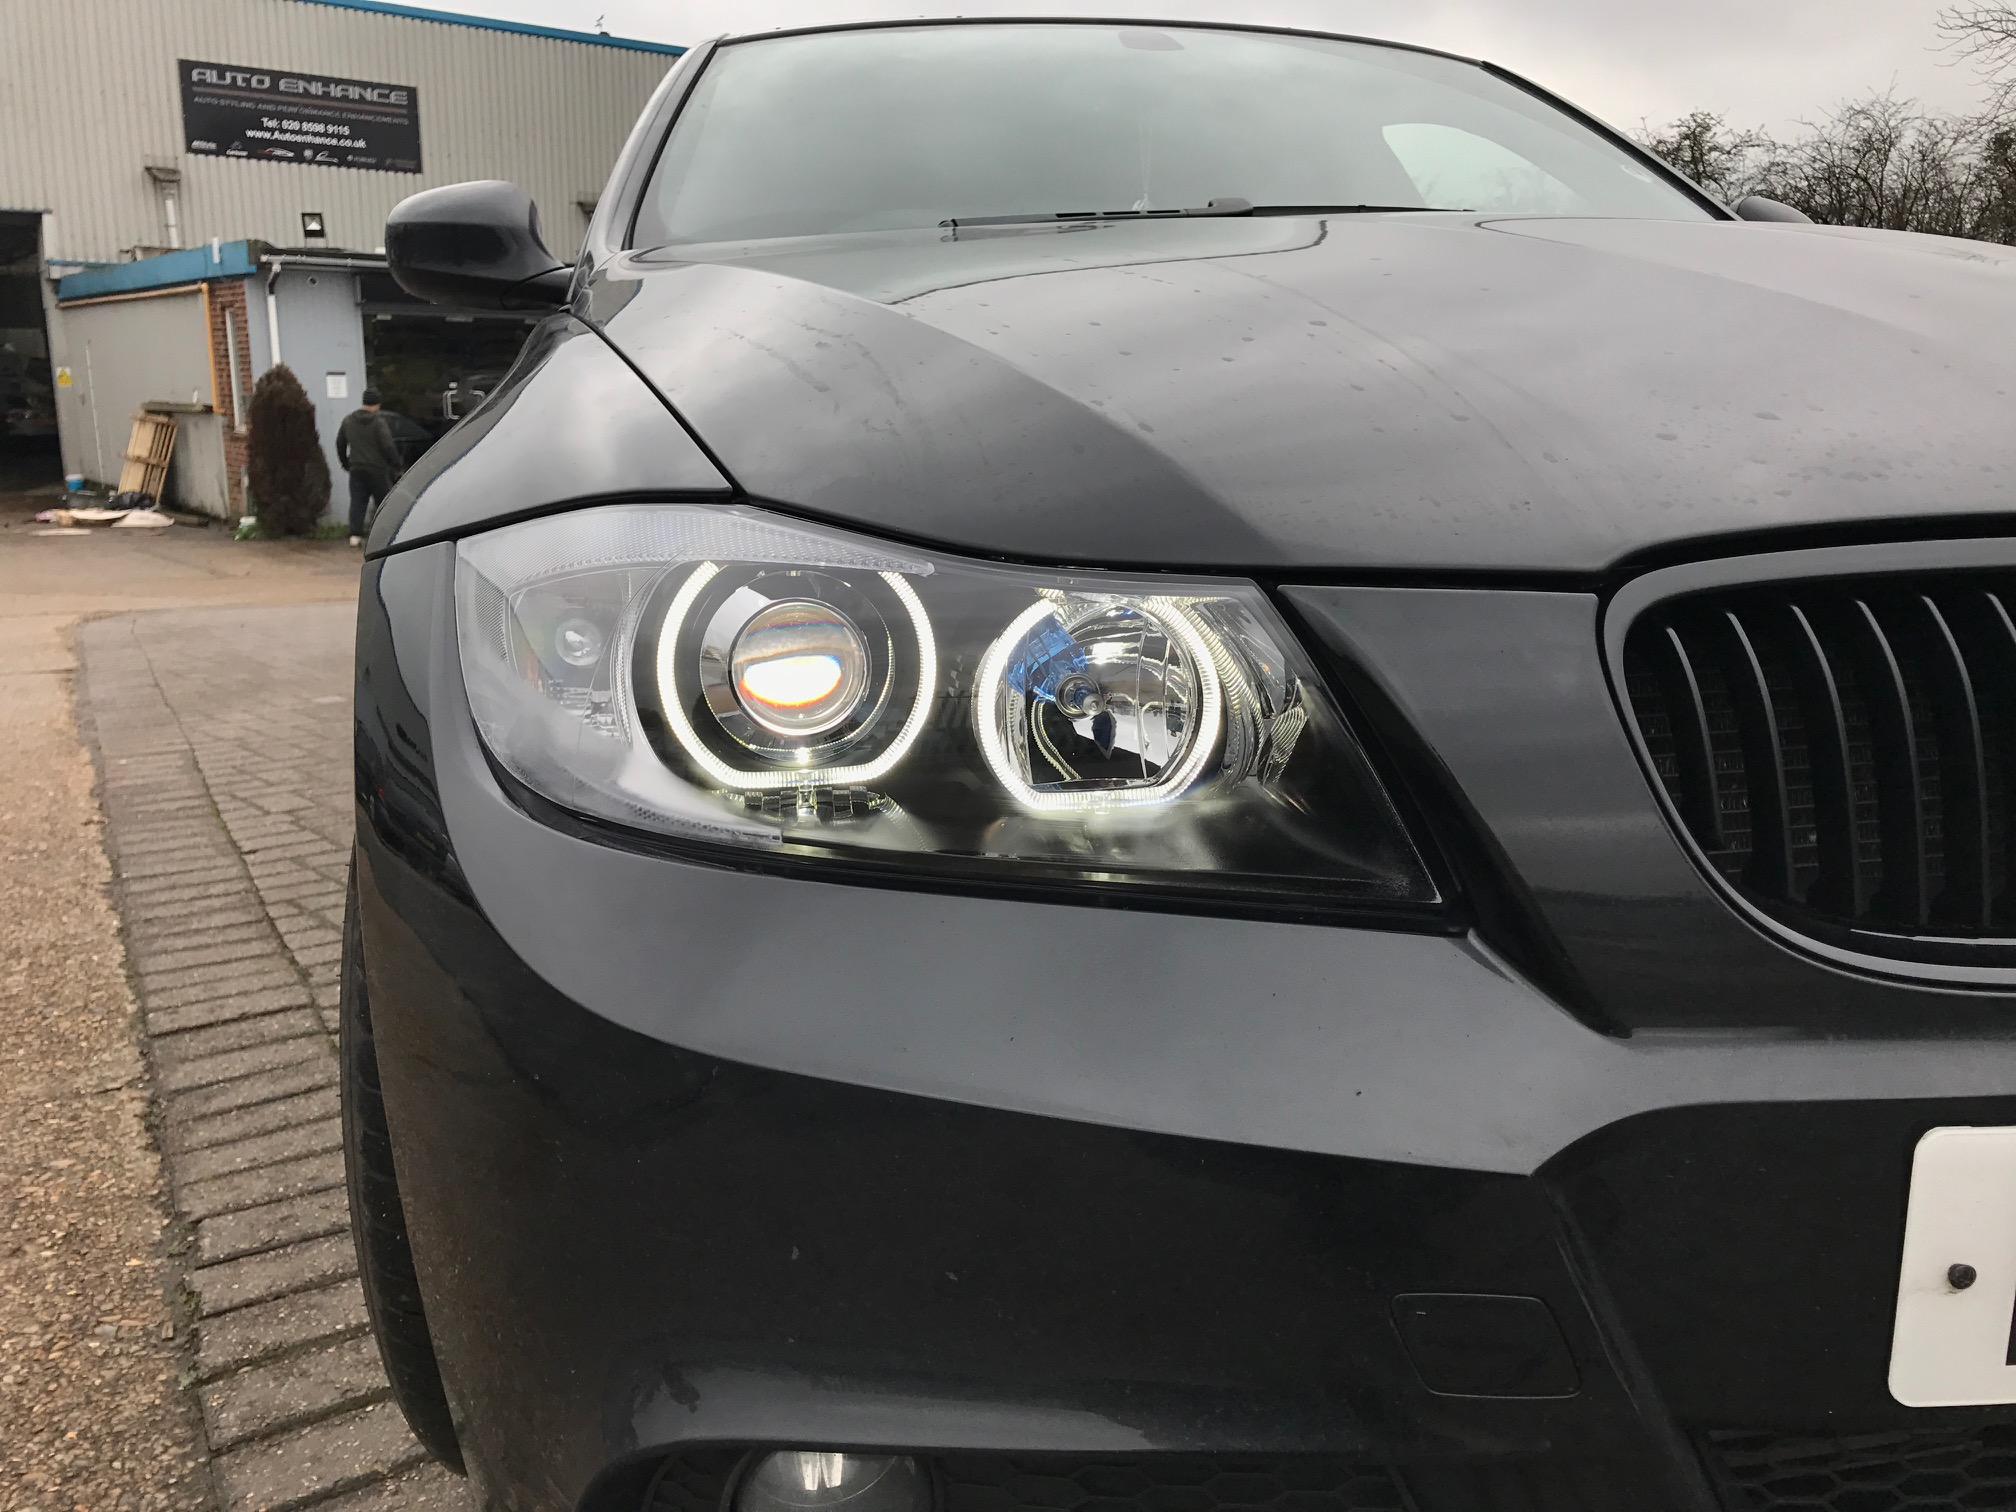 E90 - exterior styling